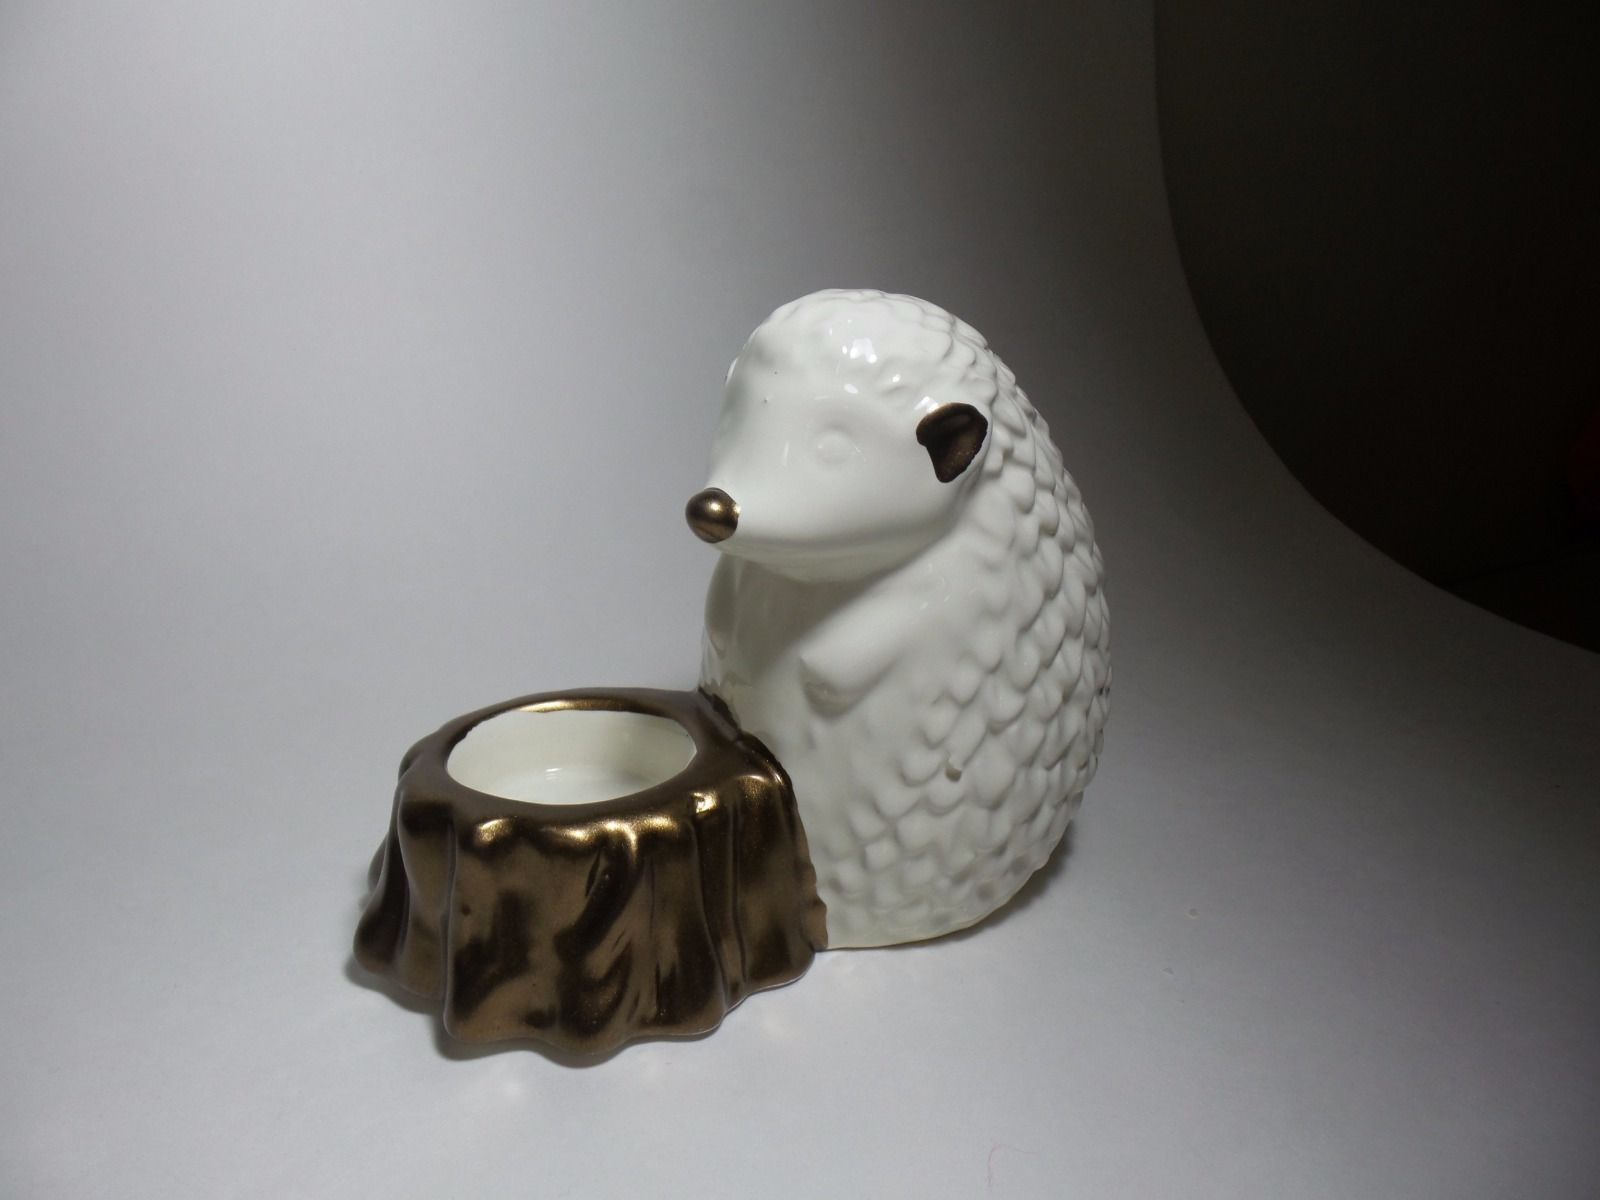 White Ceramic Hedgehog tealight candleholder with gold accents